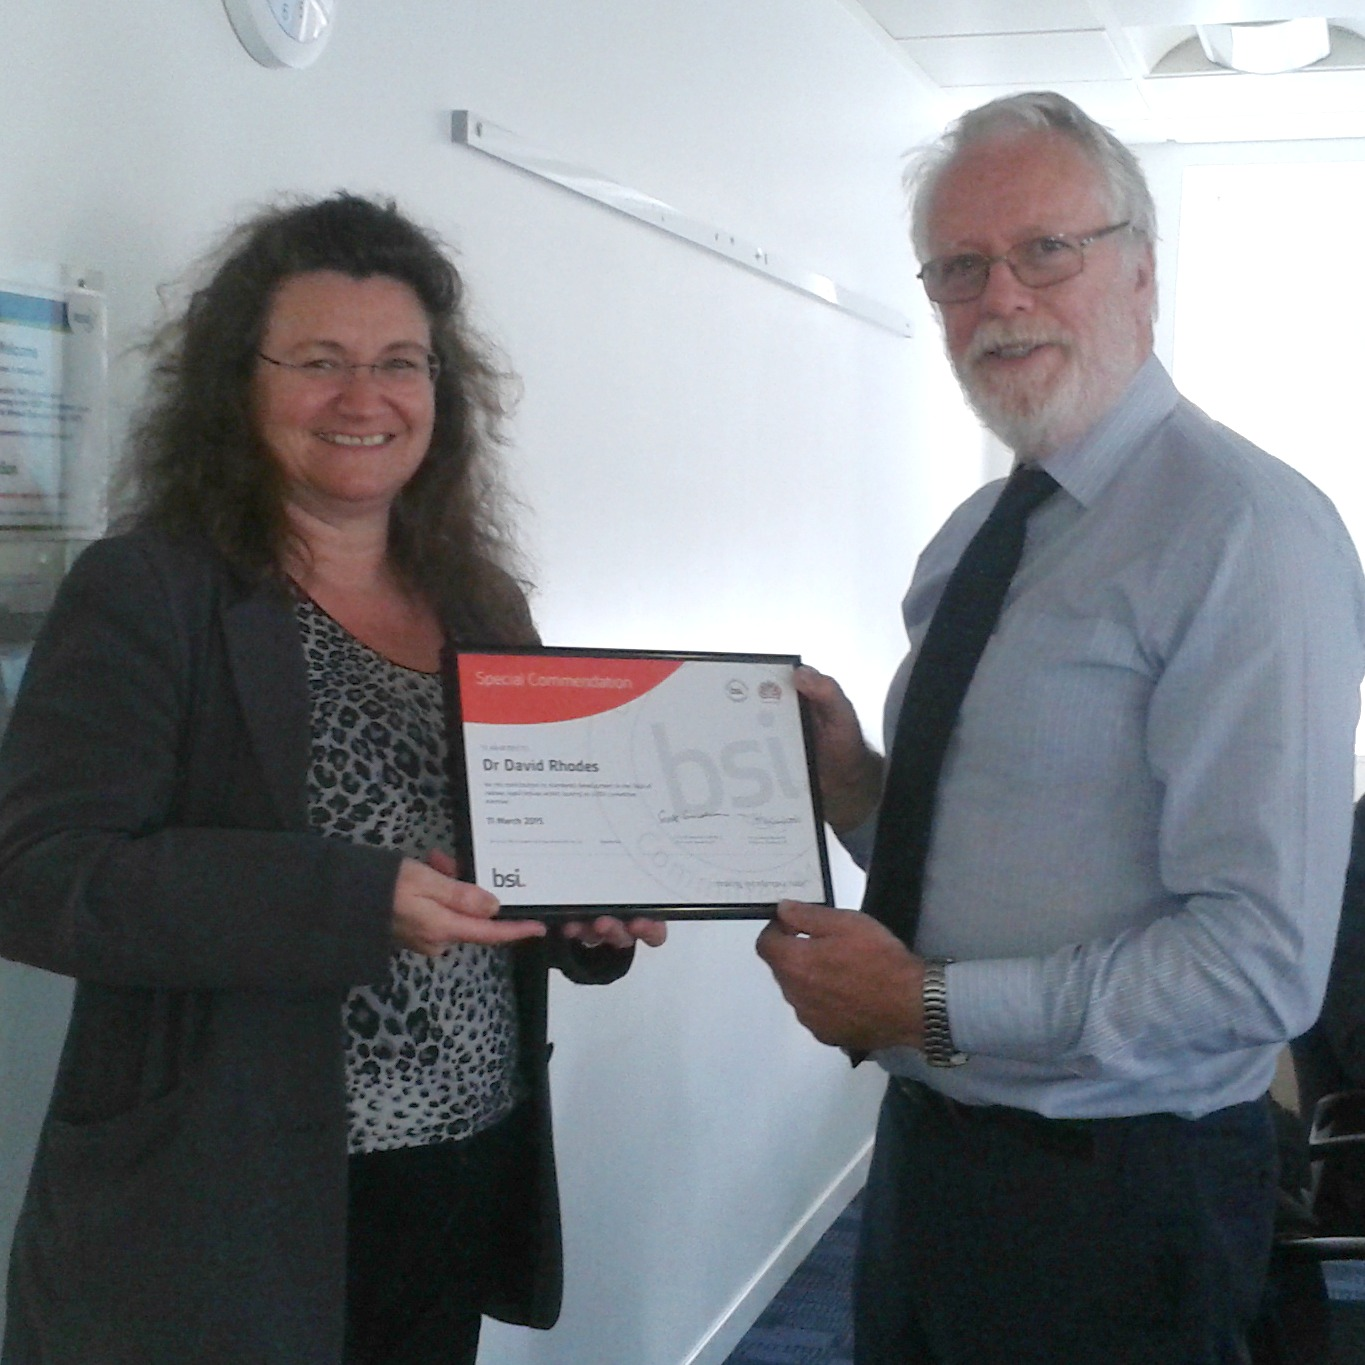 Dr David Rhodes (right) receives his award from Debbie Stead, BSI